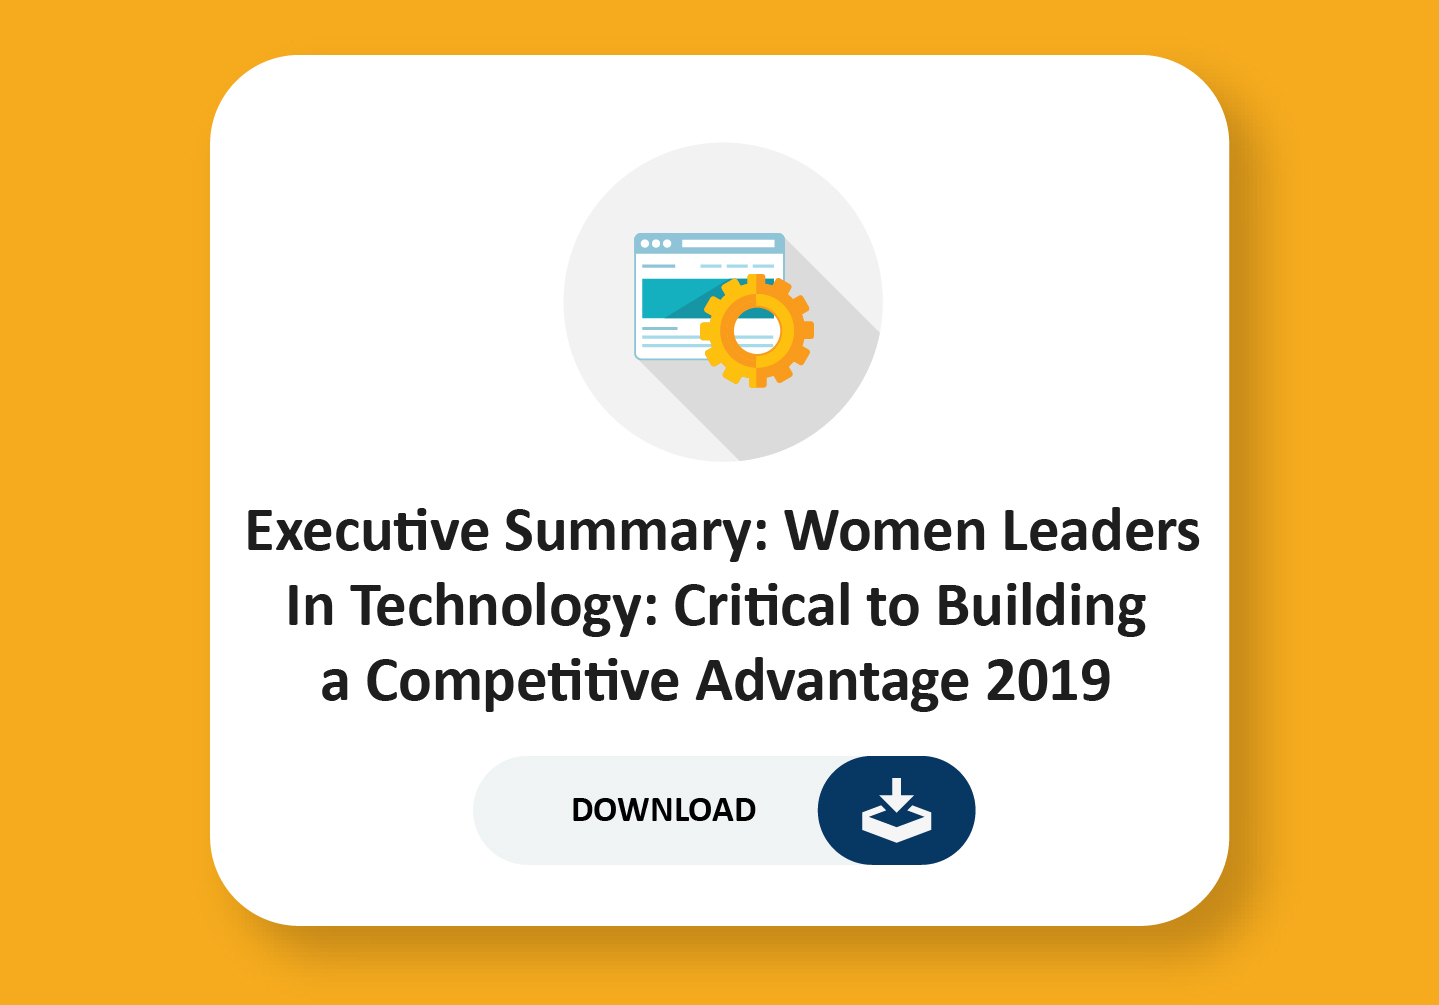 Women leaders in technology critical to building a competitive edge in 2019